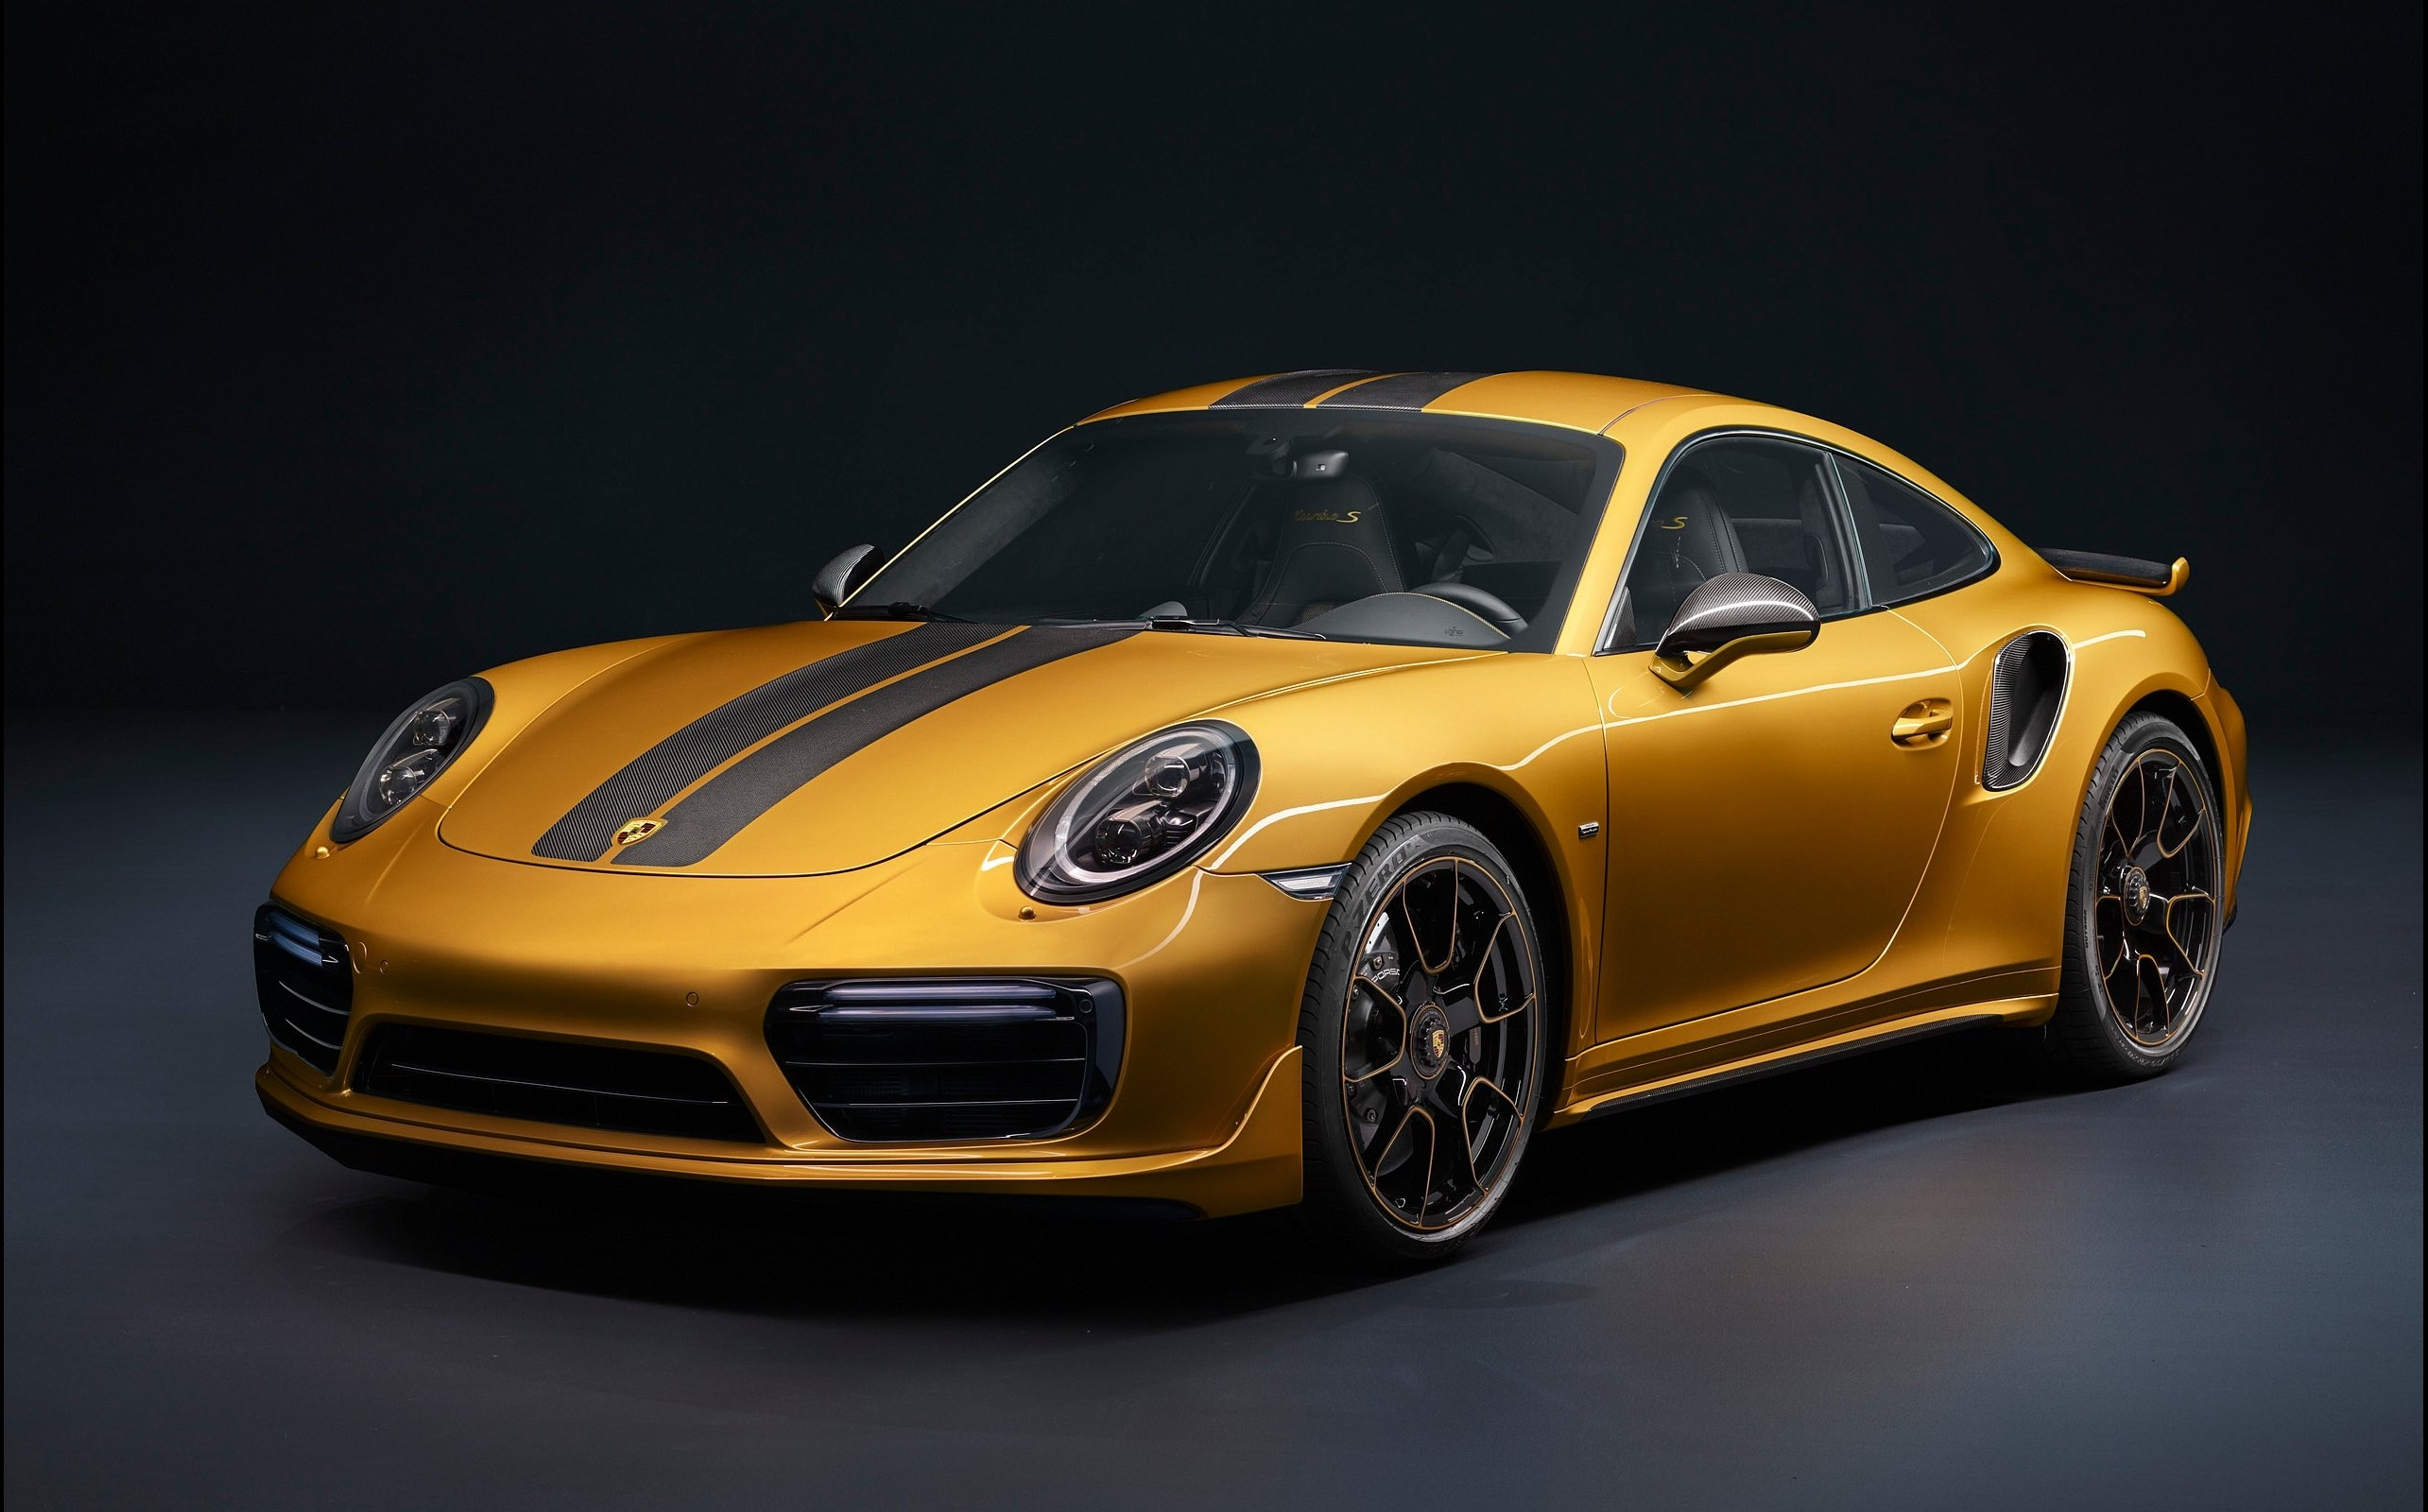 97 Porsche 911 Turbo HD Wallpapers Background Images   Wallpaper 2569x1600